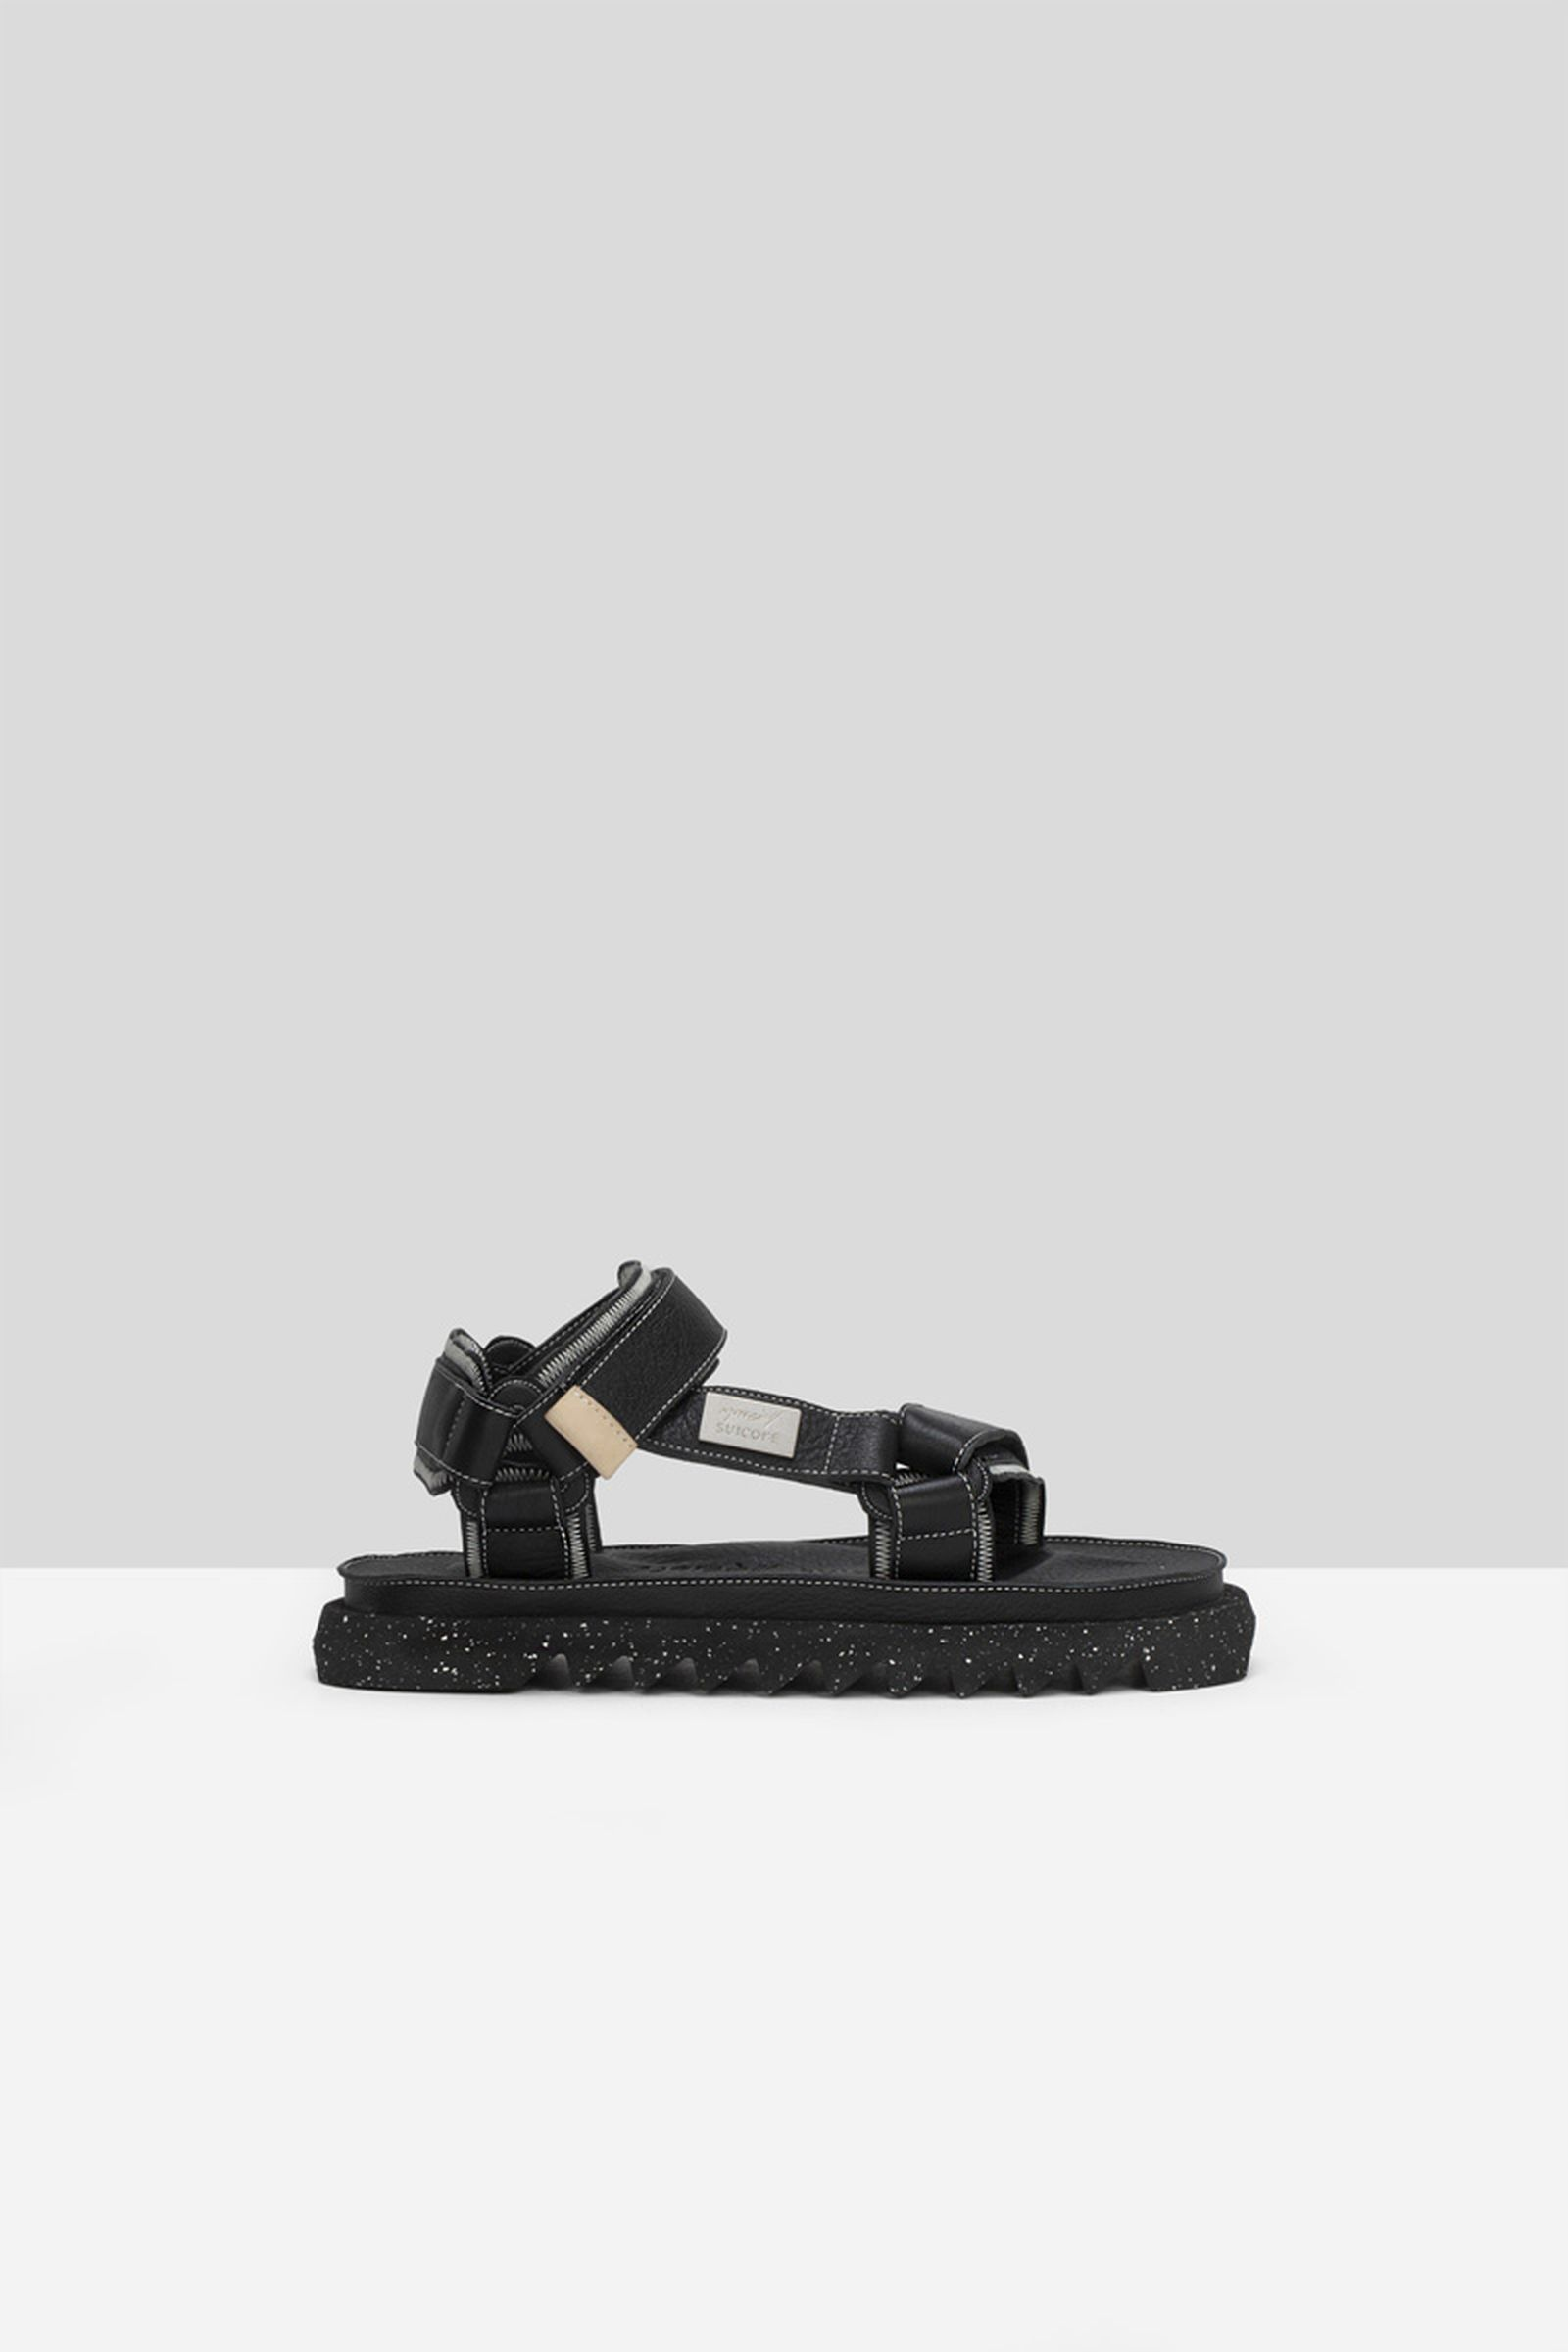 marsell-suicoke-ss21-collection-release-date-price-10